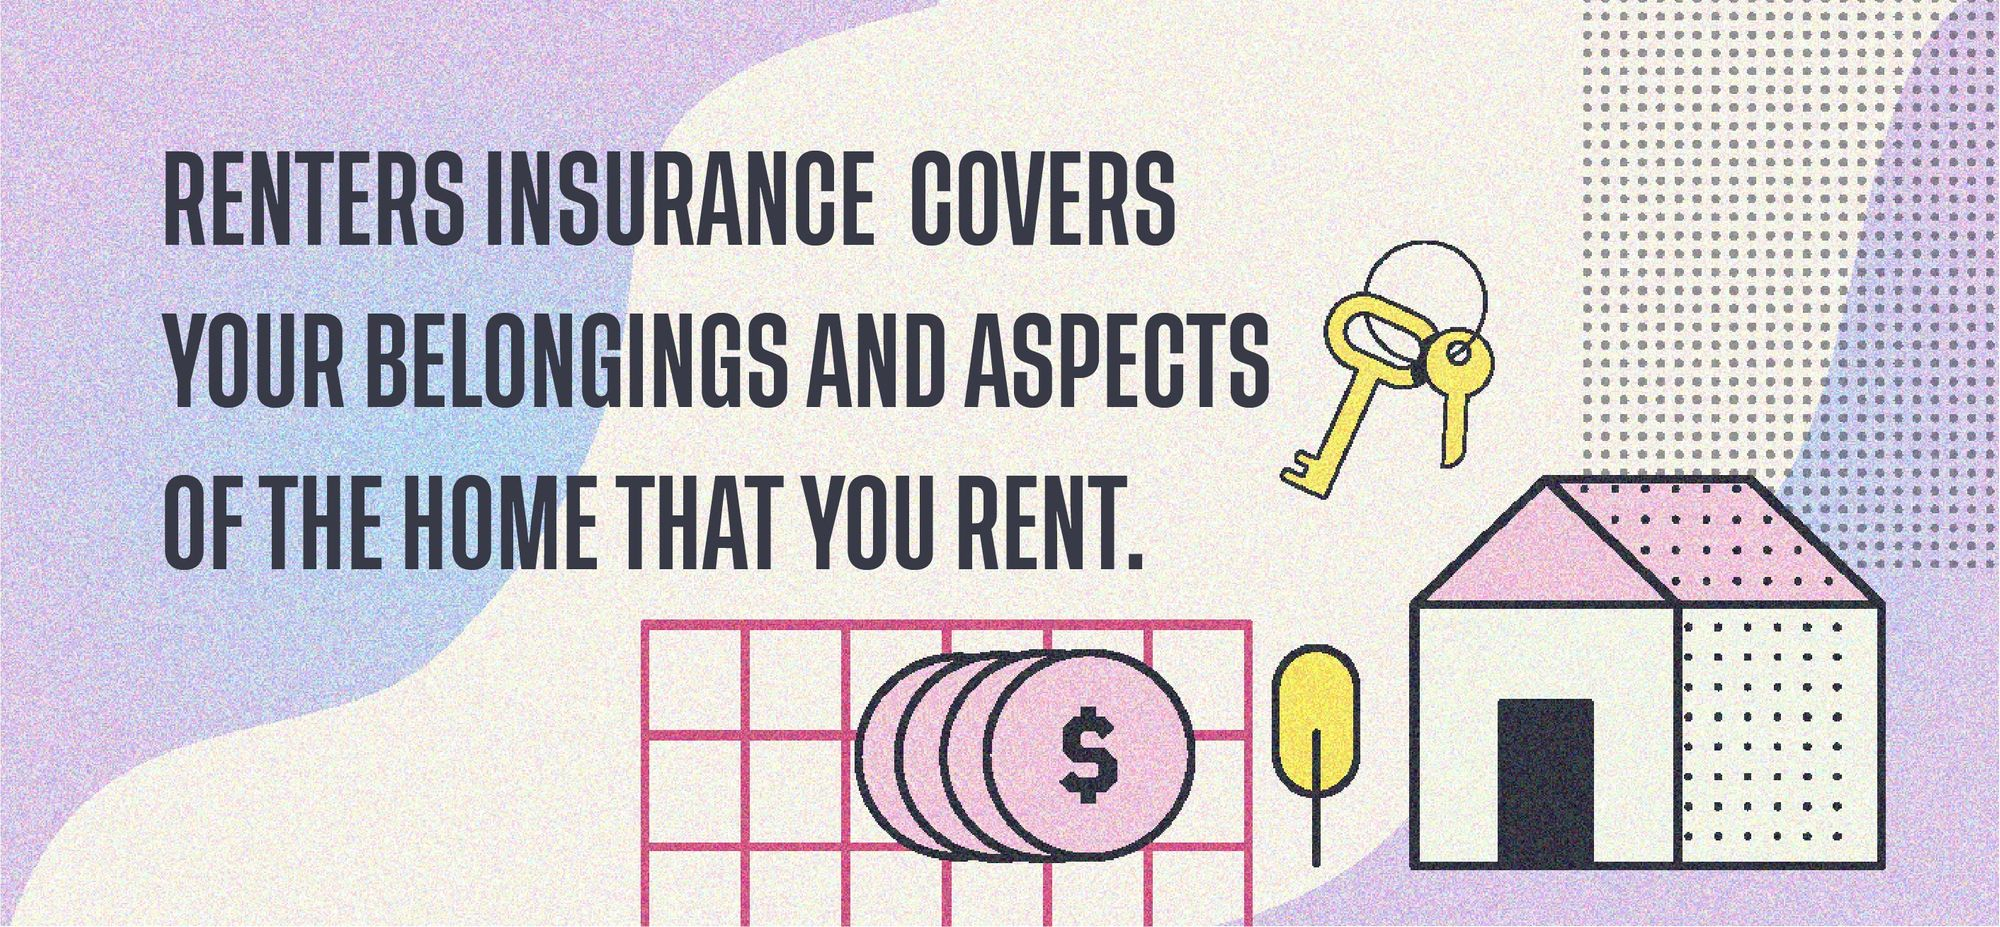 Renters insurance covers your belongings and aspects of the home that you rent.